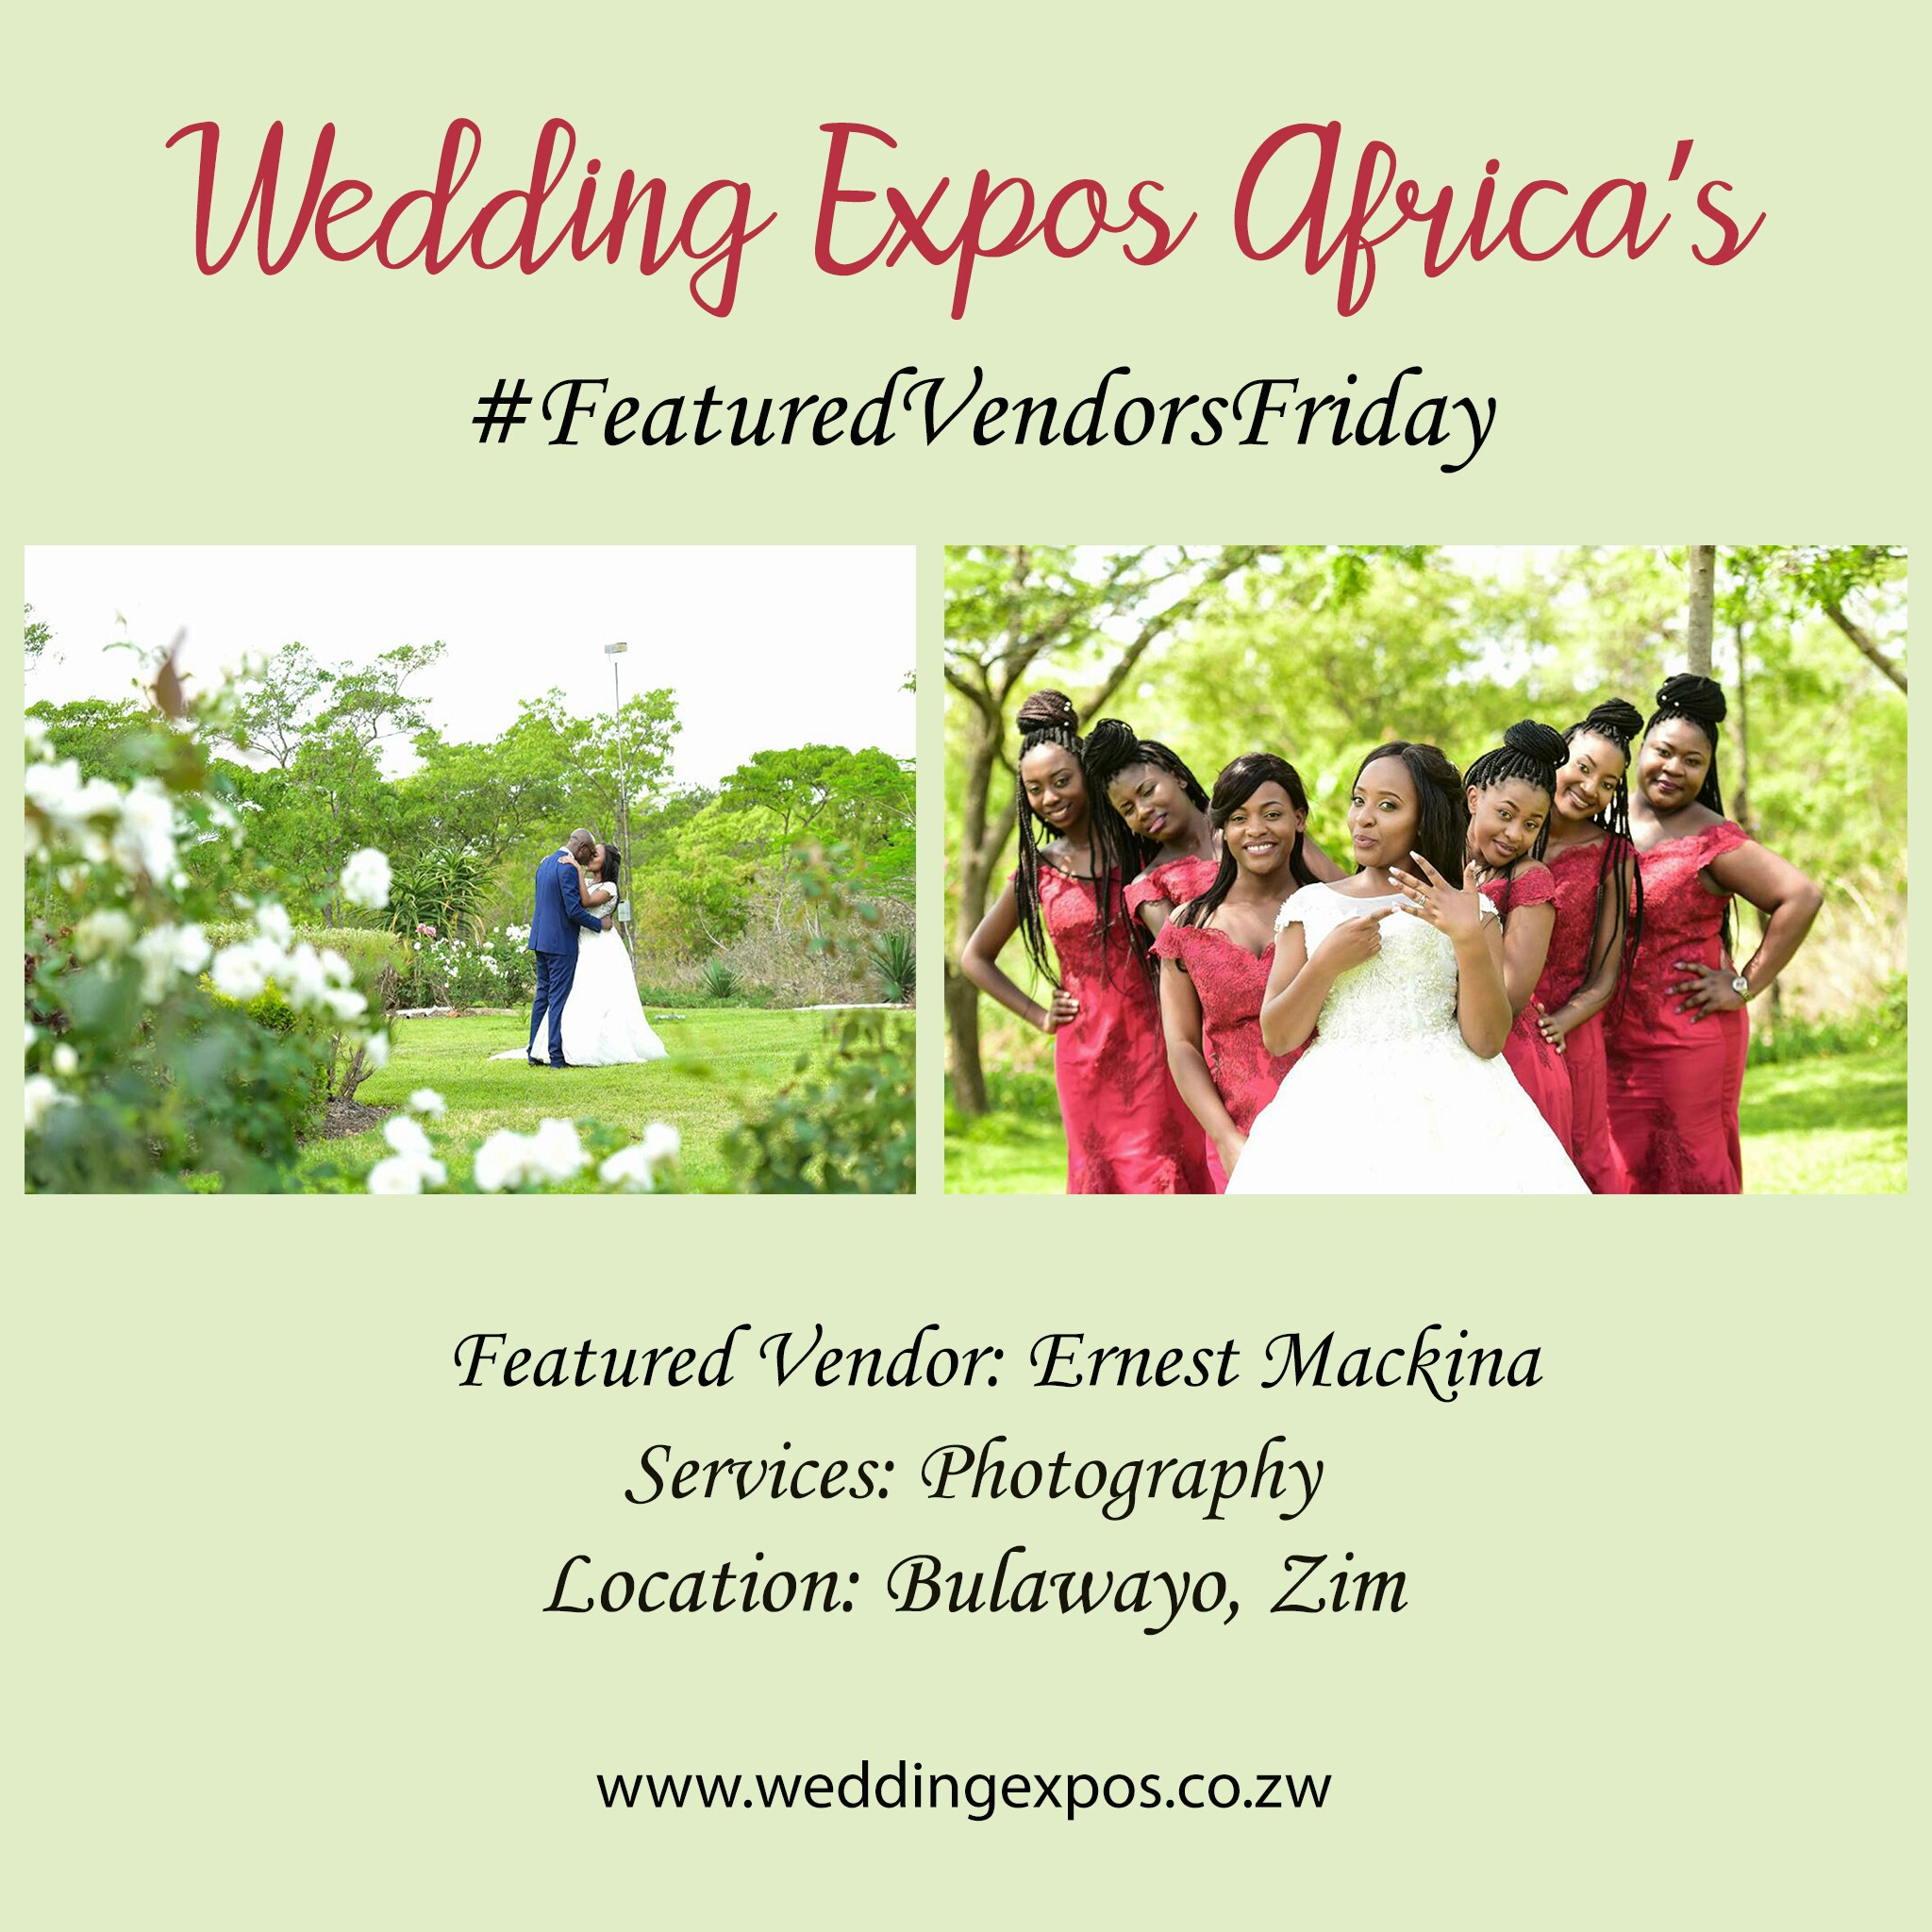 Ernest Mackina Photography is a wedding vendor in Bulawayo Zimbabwe. He was featured on wedding expos africa's featured vendors friday